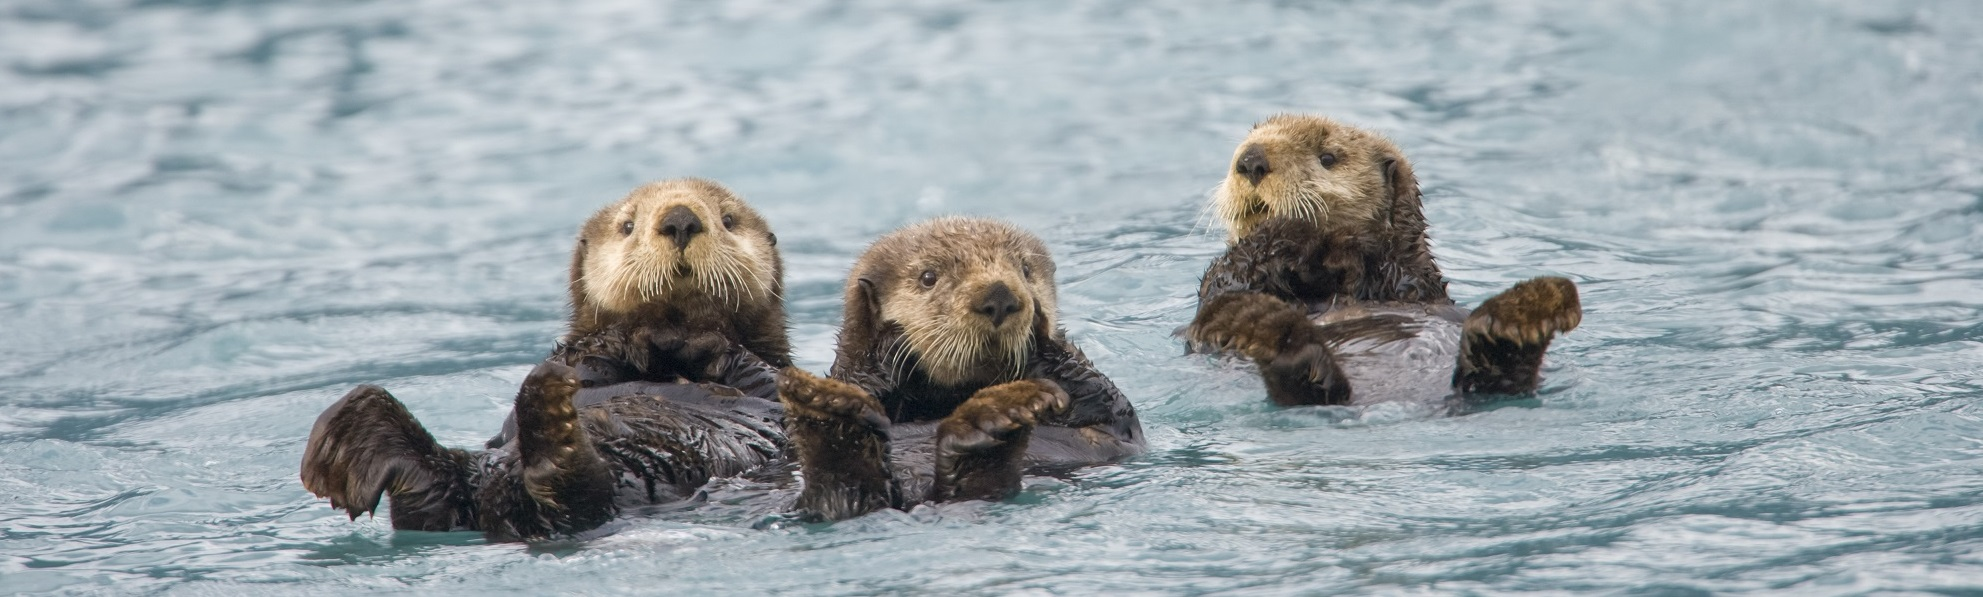 Three sea otters floating in the ocean